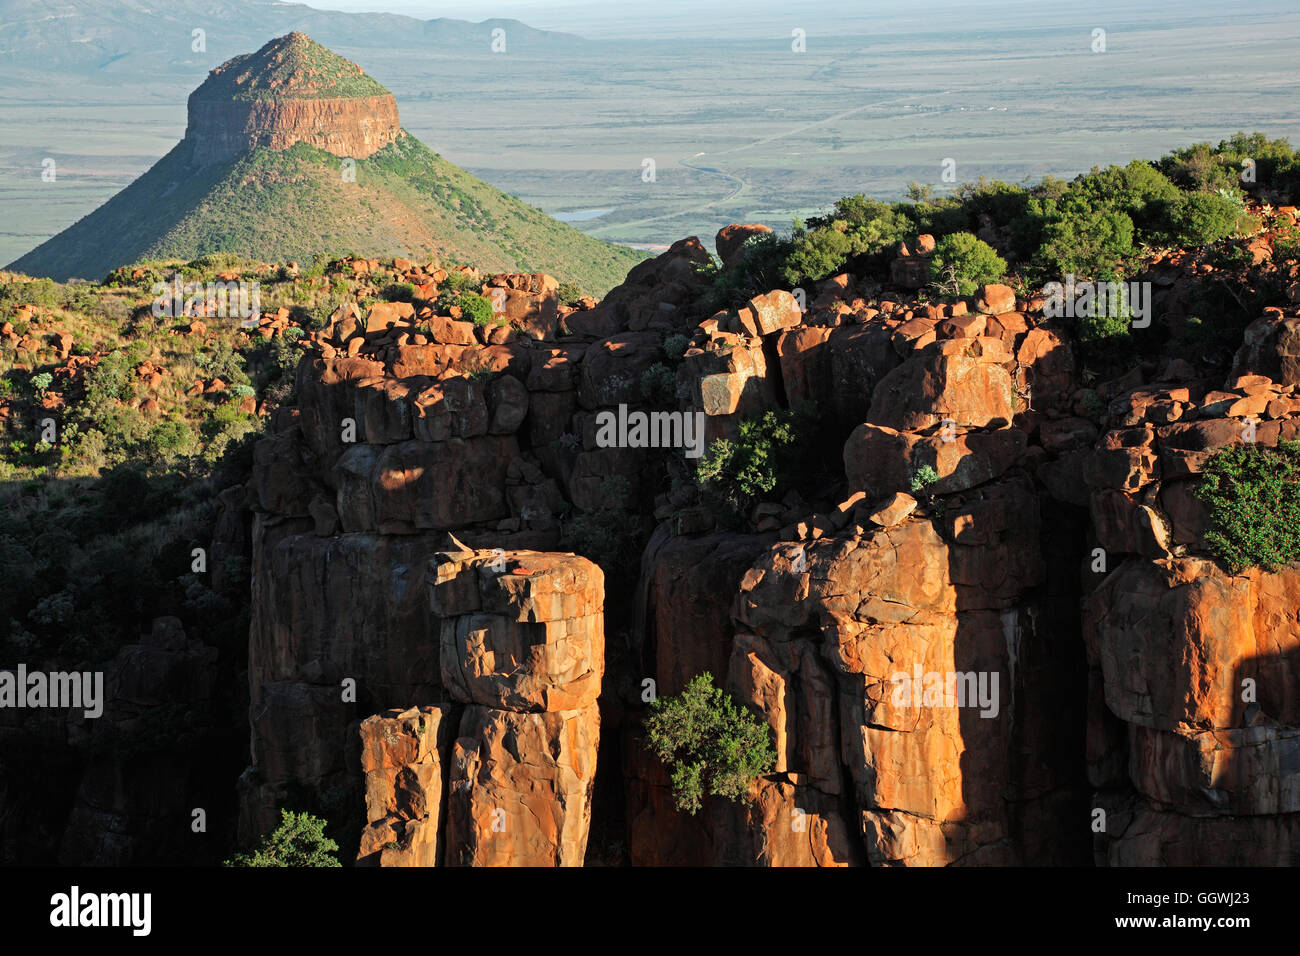 Valley of desolation, Camdeboo National Park, South Africa - Stock Image